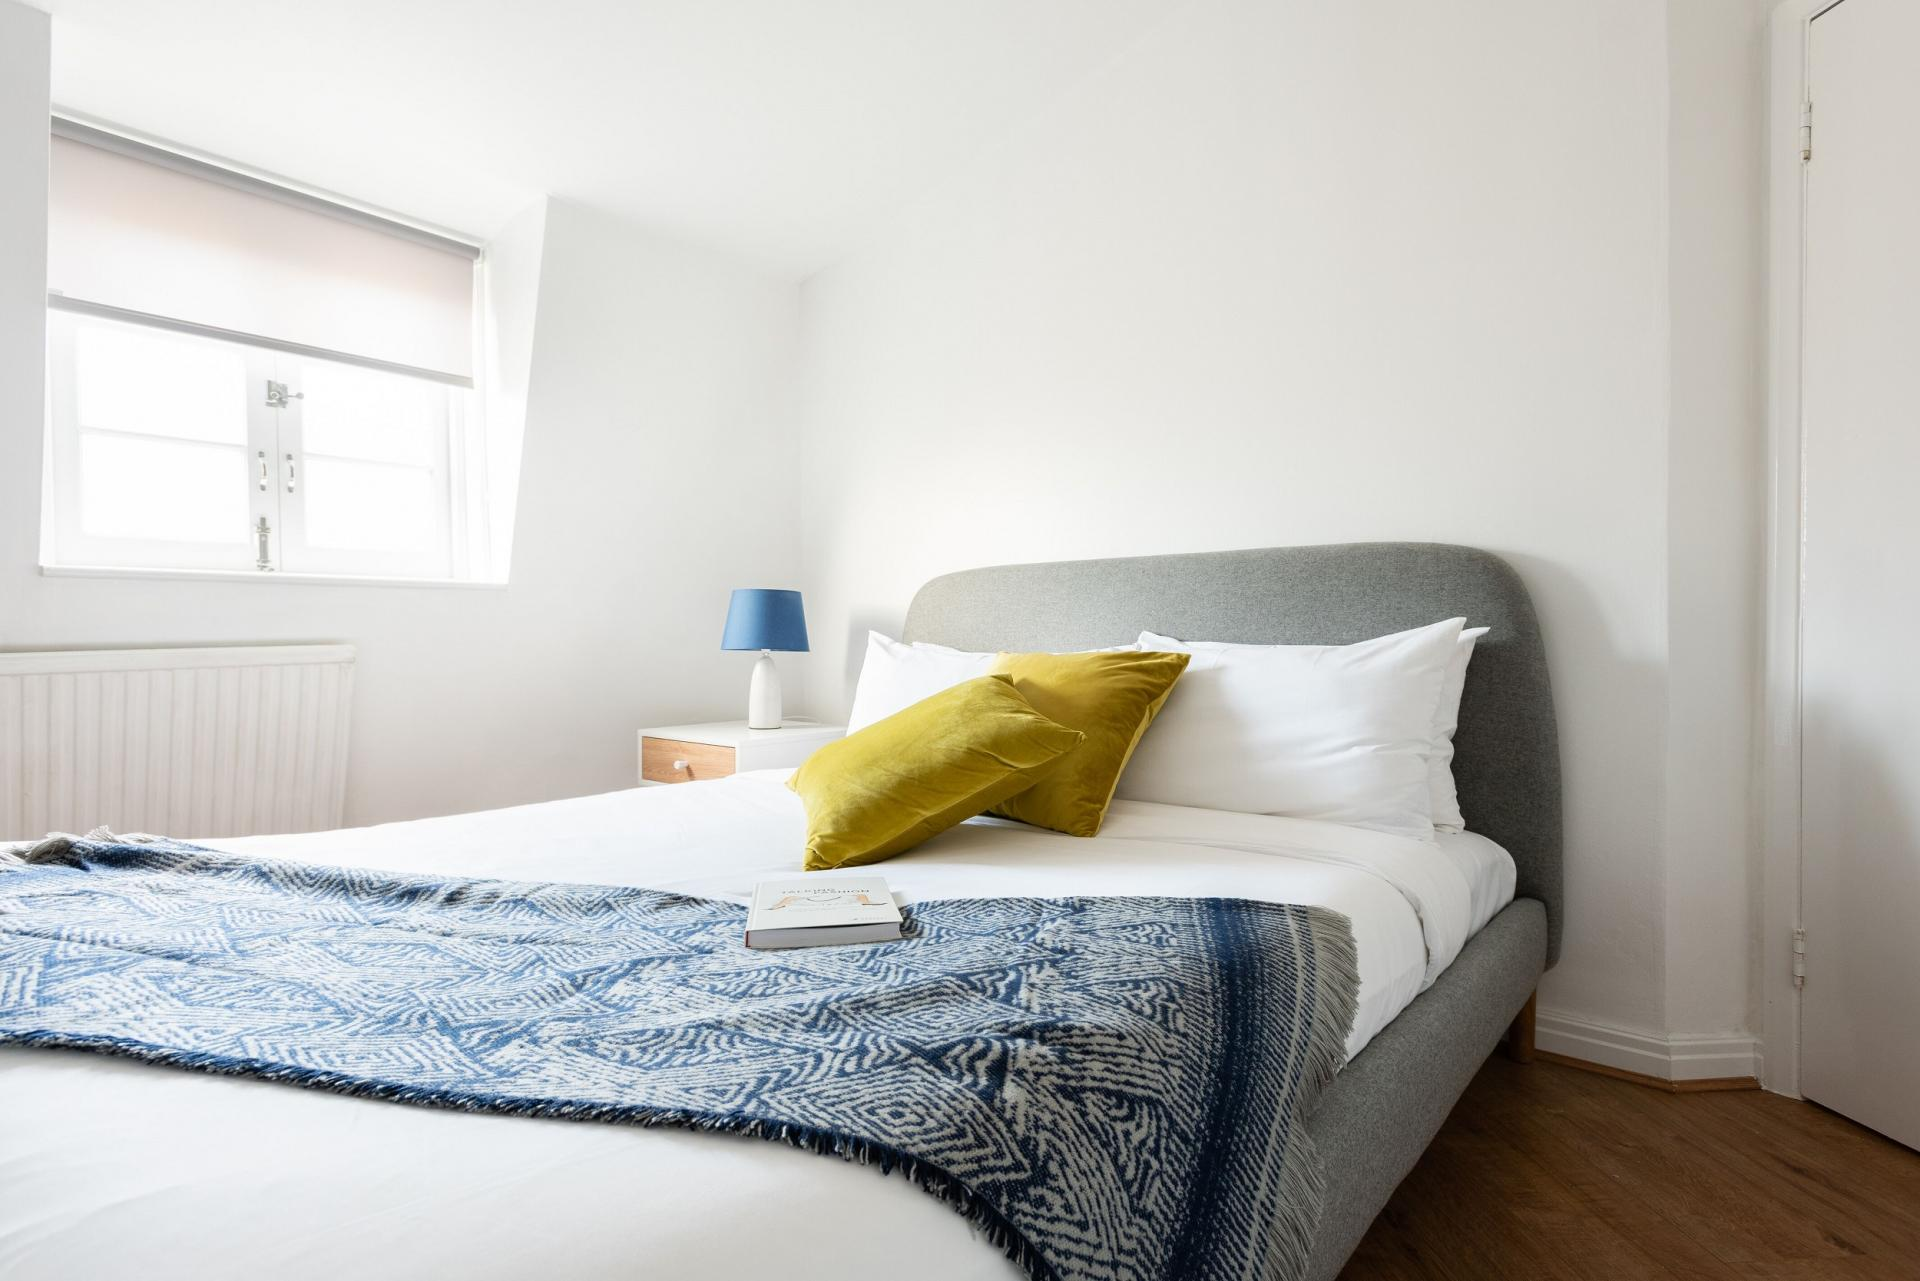 Bedroom at The Paddington Mews, Paddington, London - Citybase Apartments